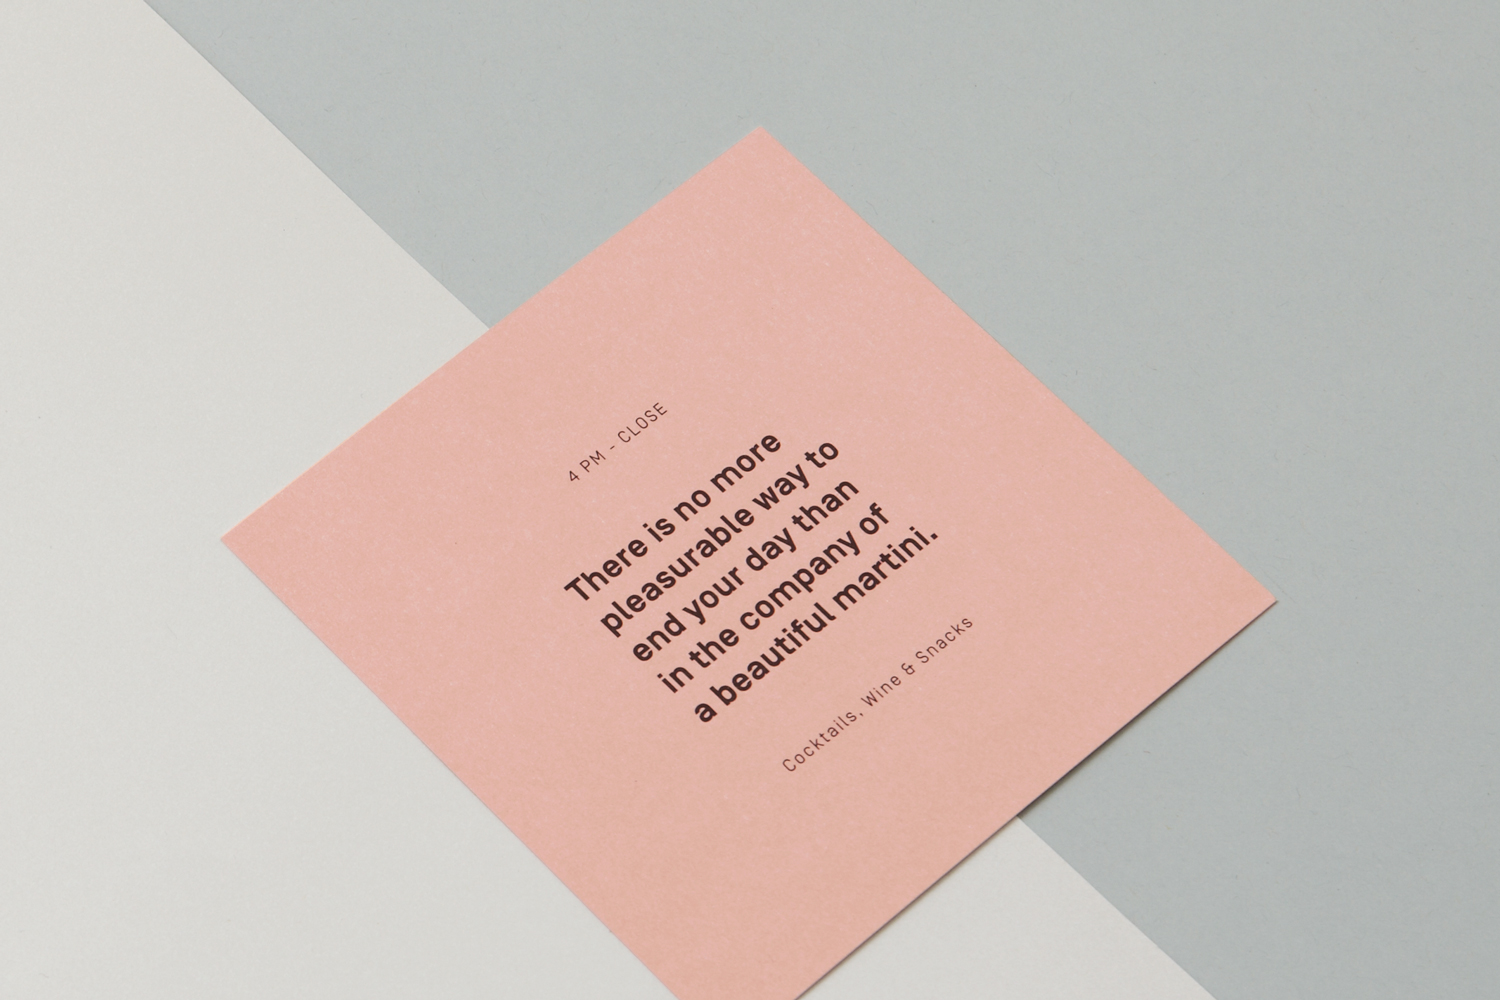 Brand identity and print for Toronto restaurant Nota Bene by graphic design studio Blok, Canada